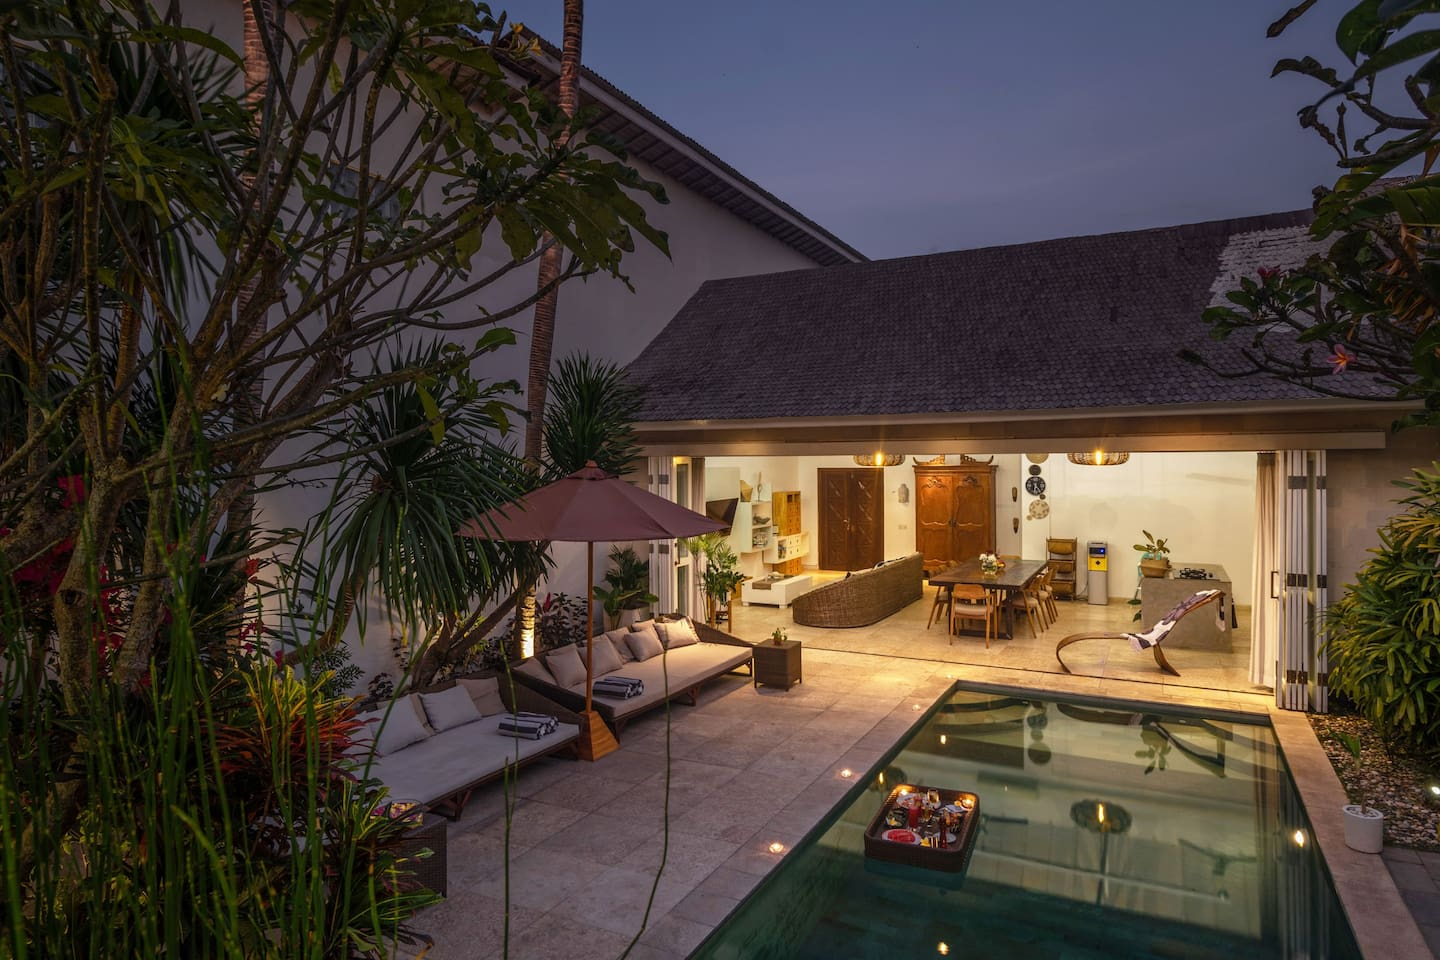 Enjoy the cosy and big pool area with several seat options.